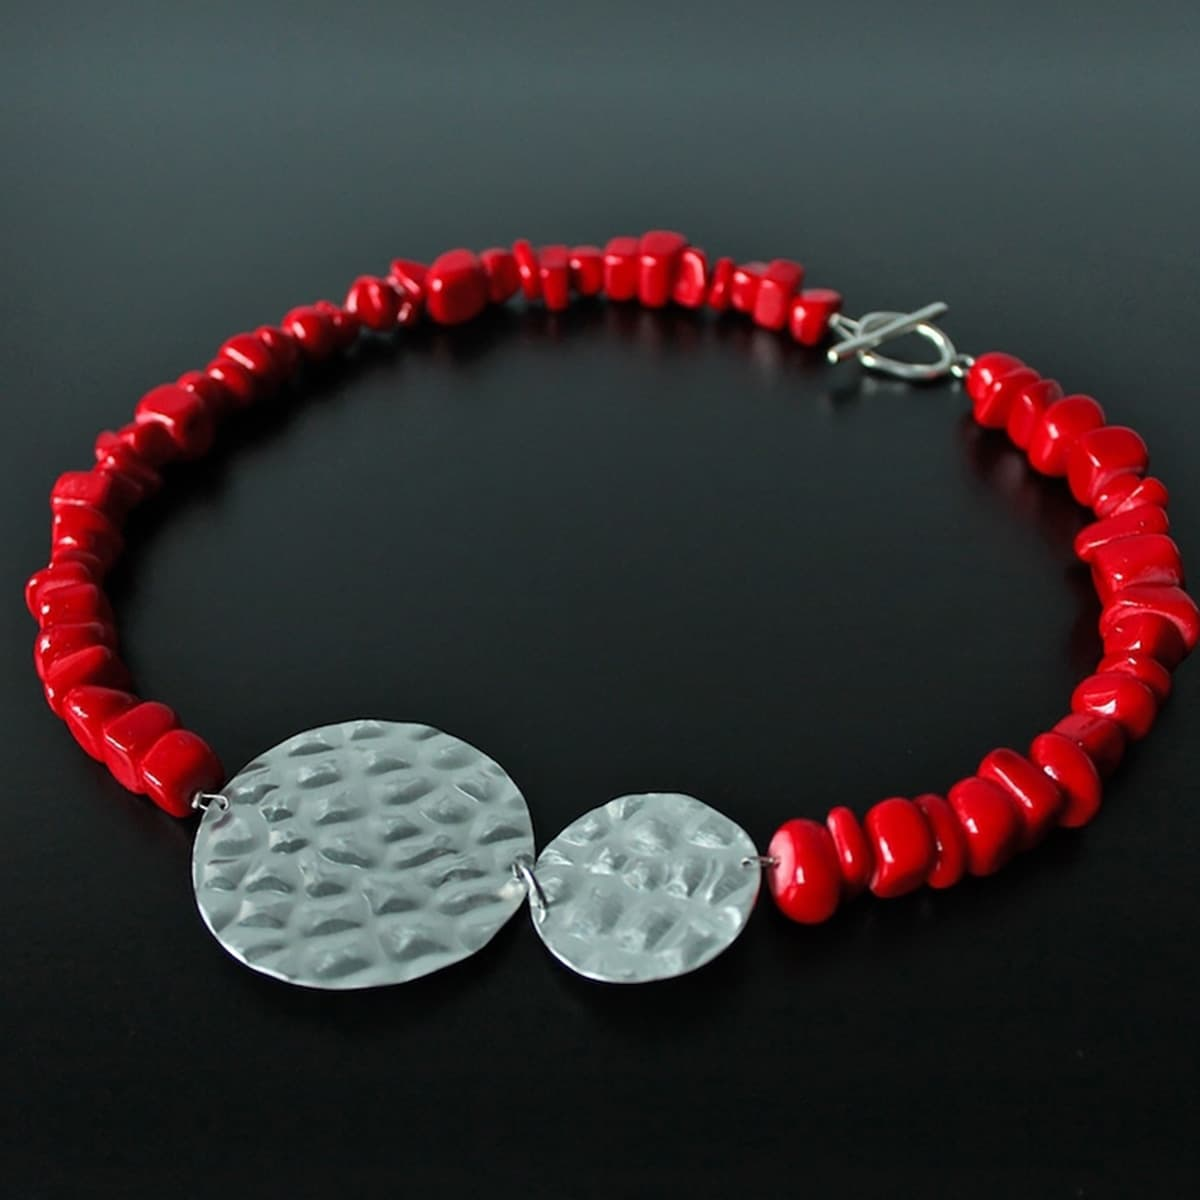 necklace, jewellery, jade, semi precious stone, colour red, metal, handmade